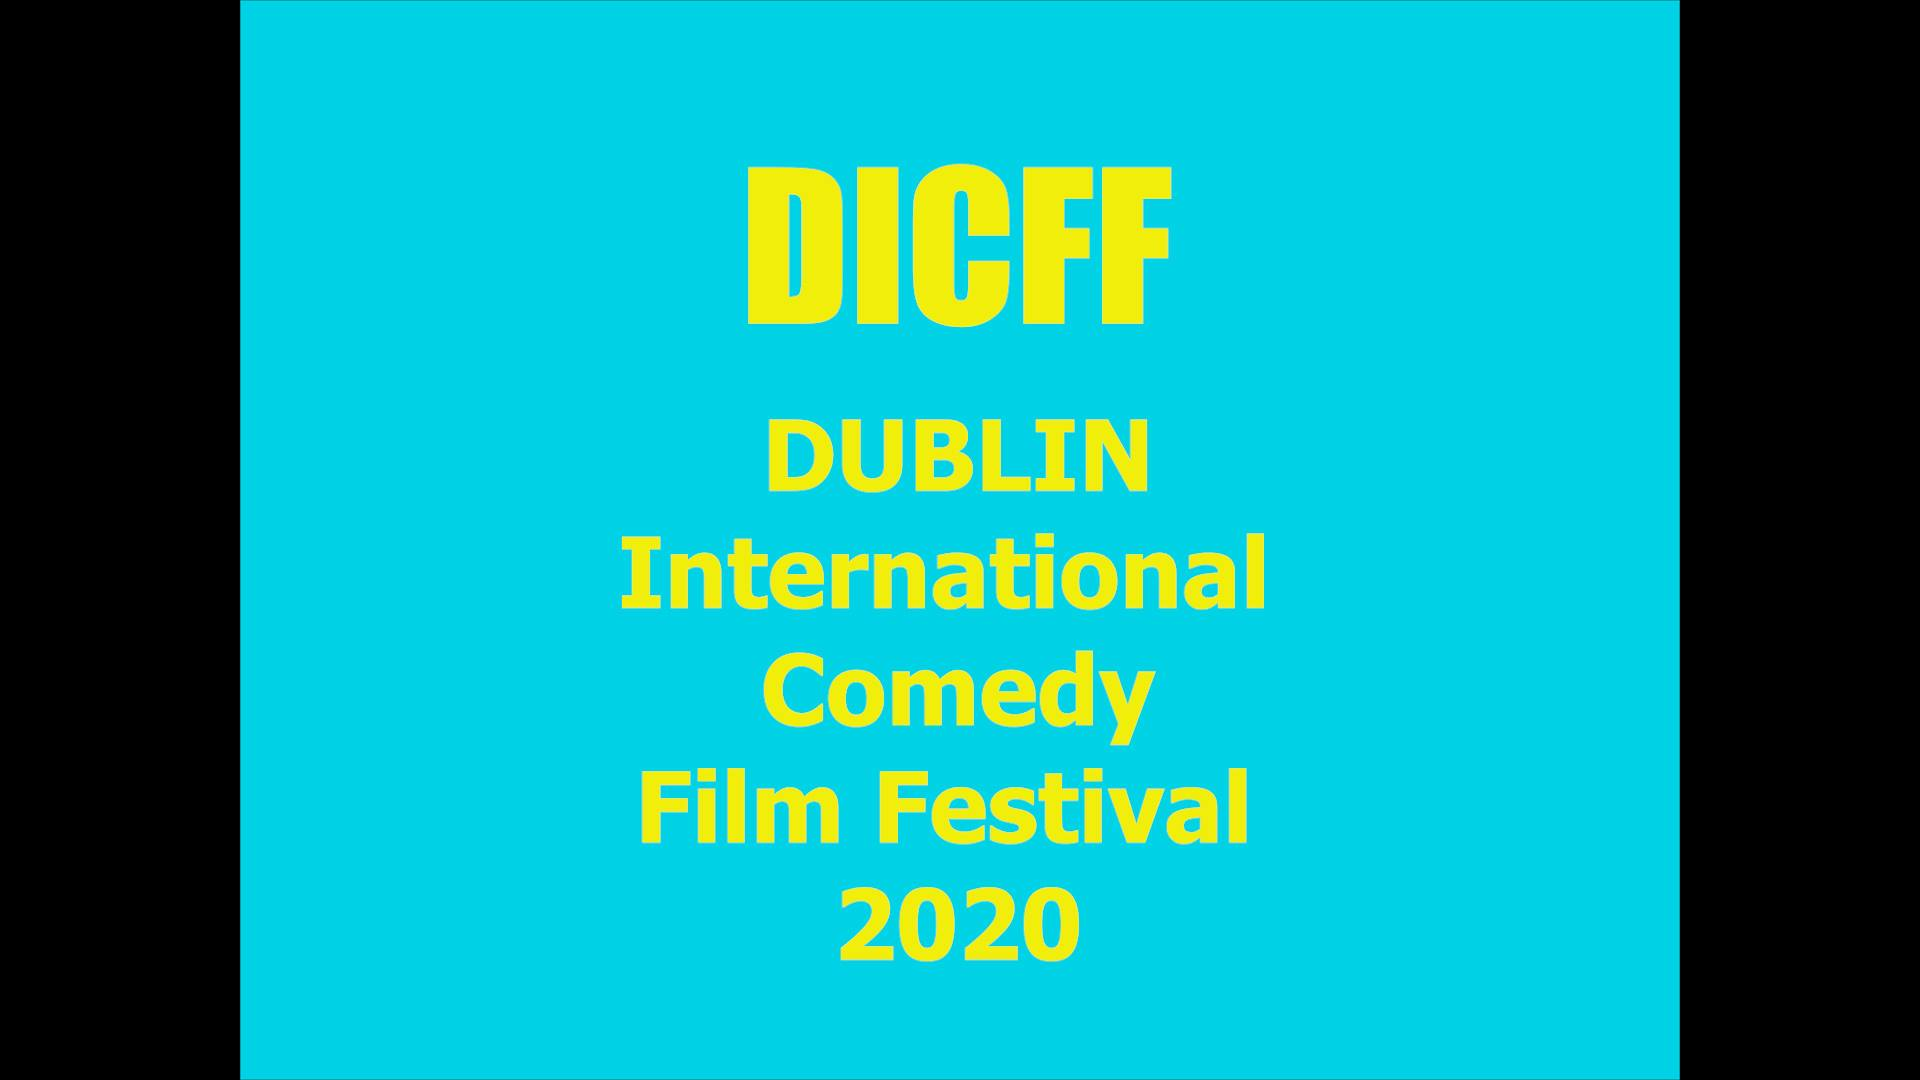 DICFF Dublin International Comedy Film Festival